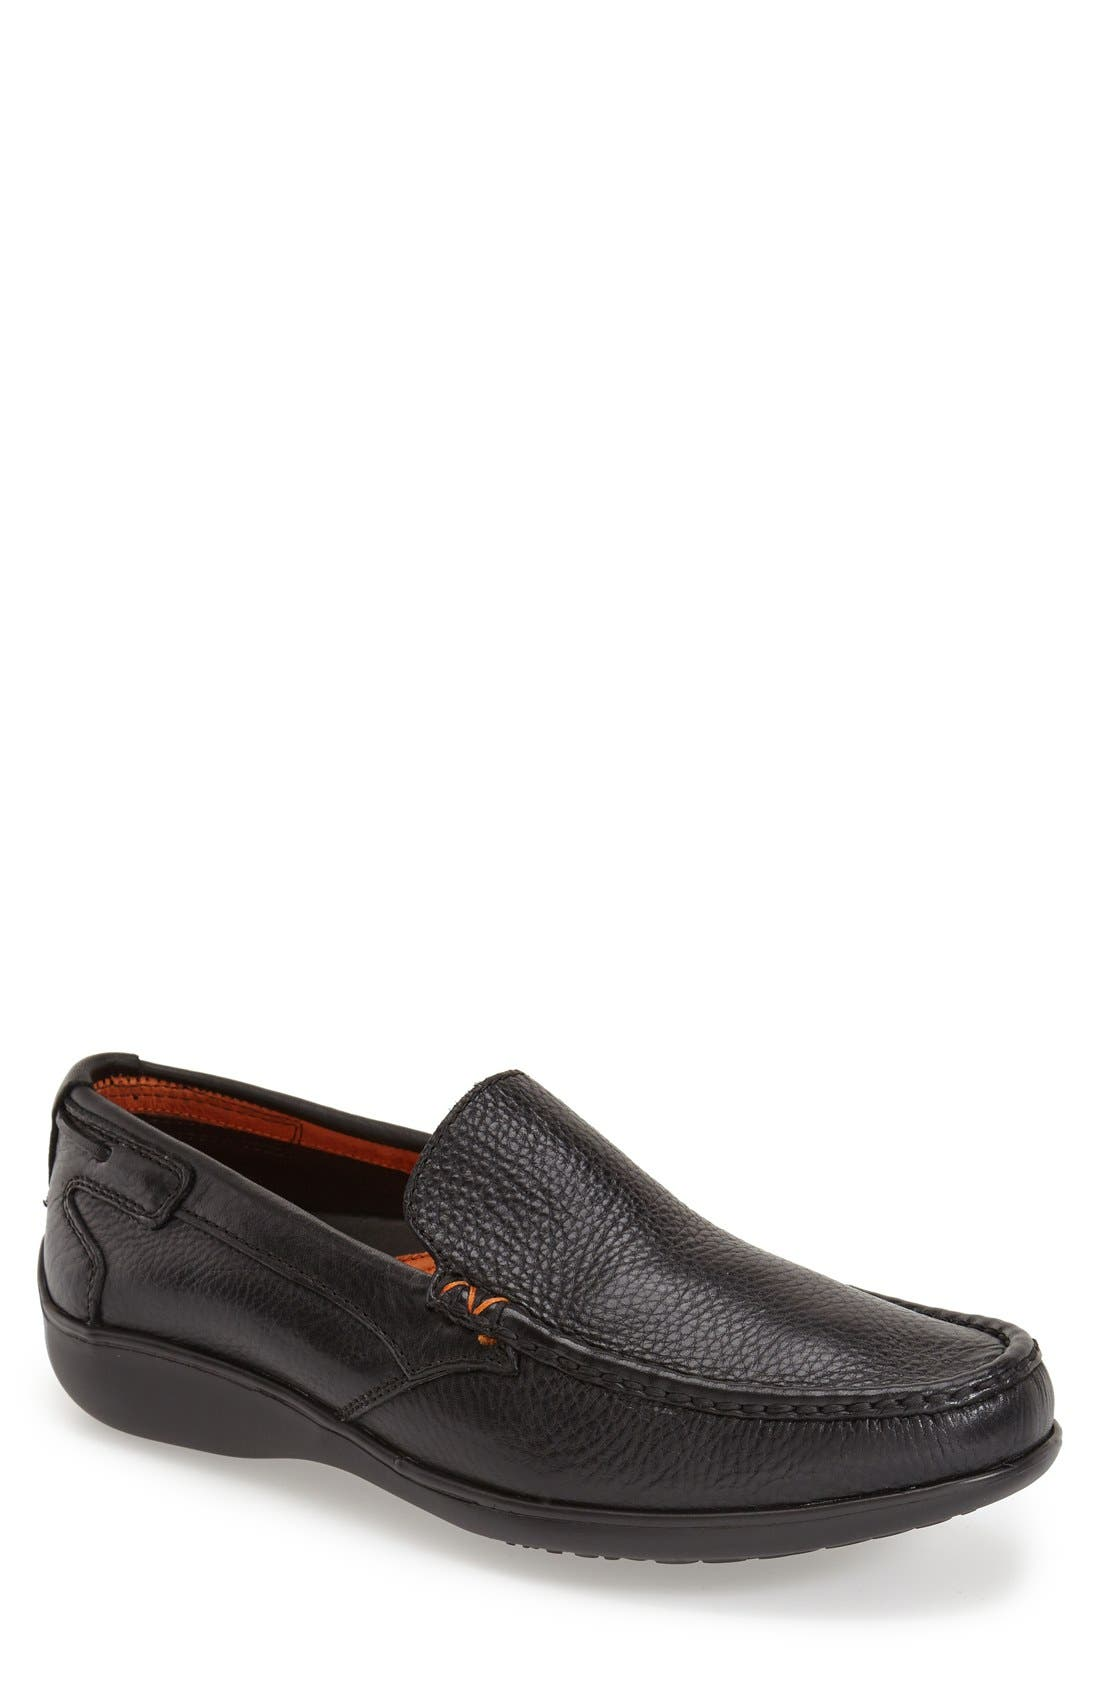 NEIL M Sterling Loafer